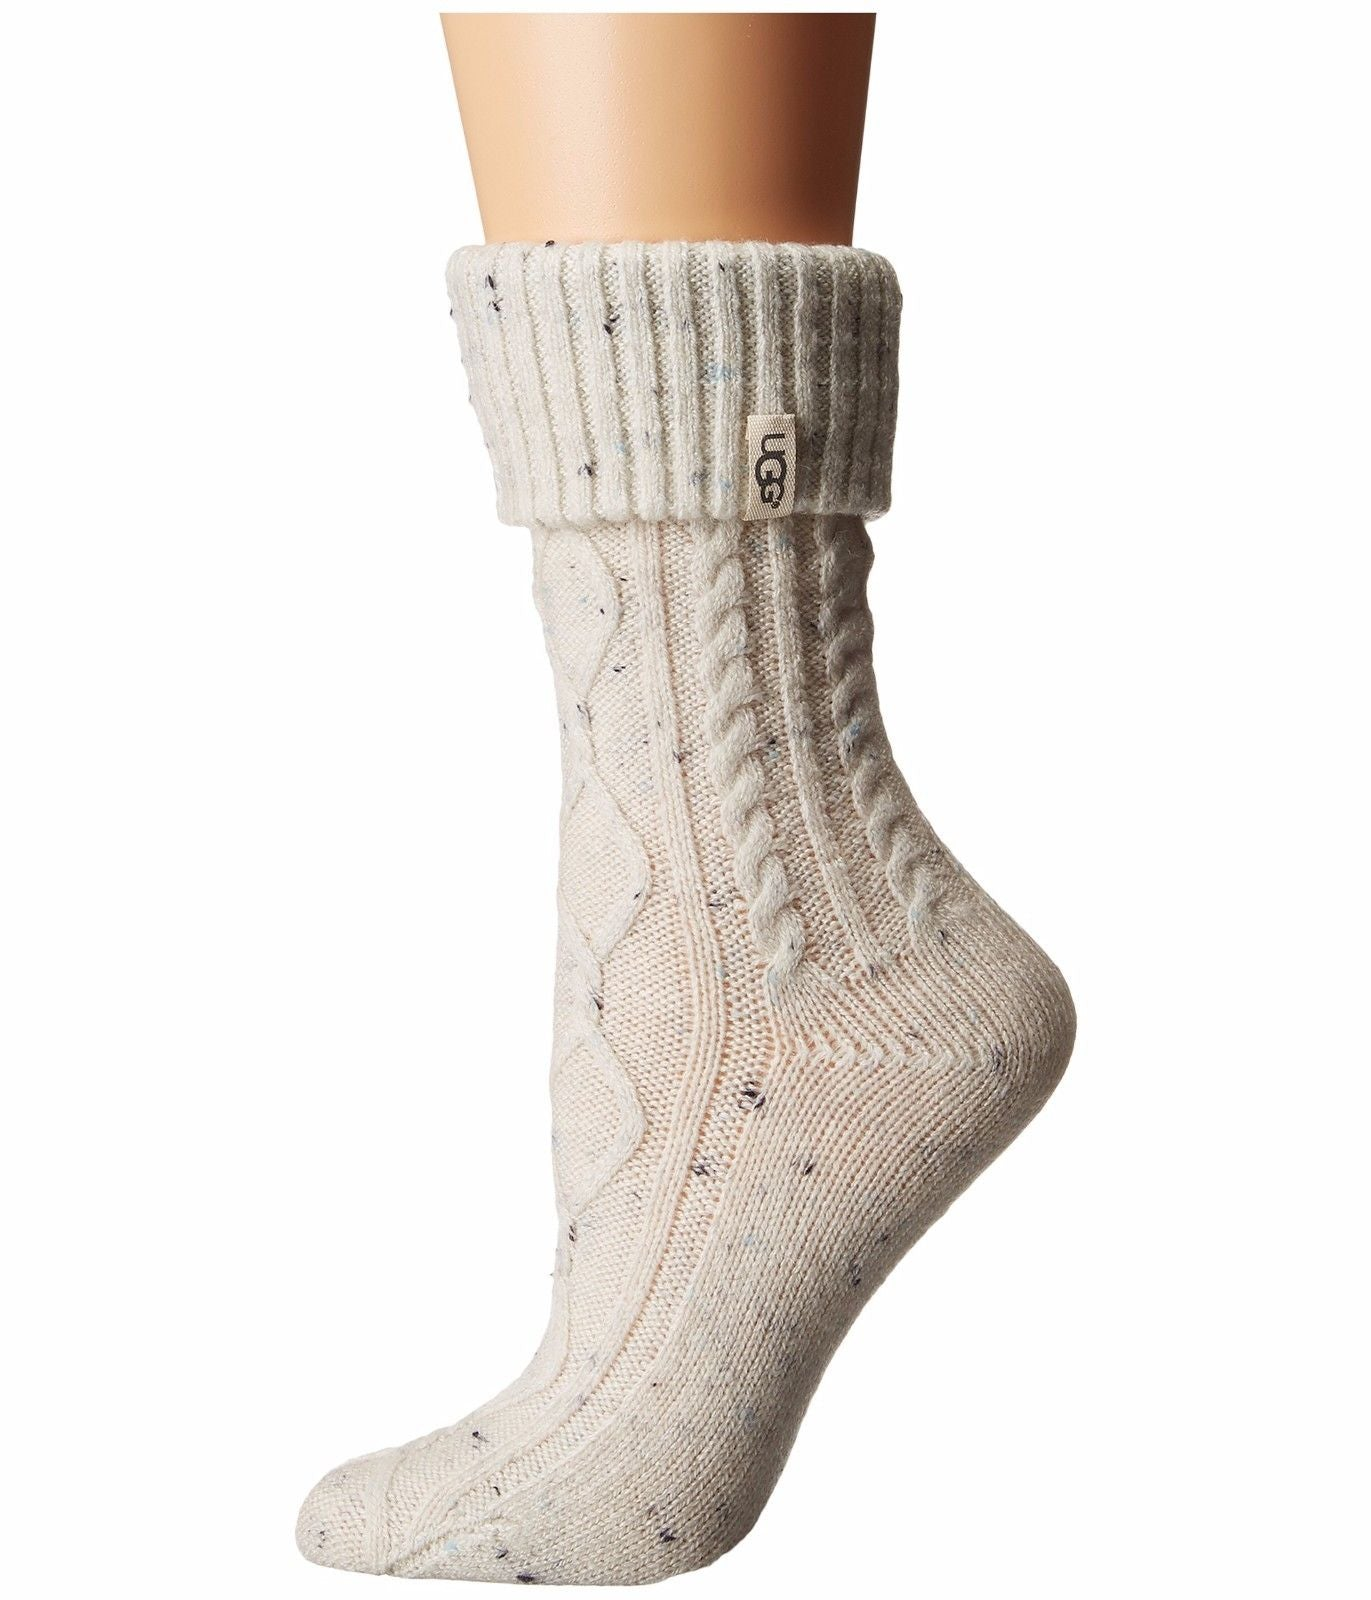 UGG® Sienna Short Rain Boot Sock - Cream